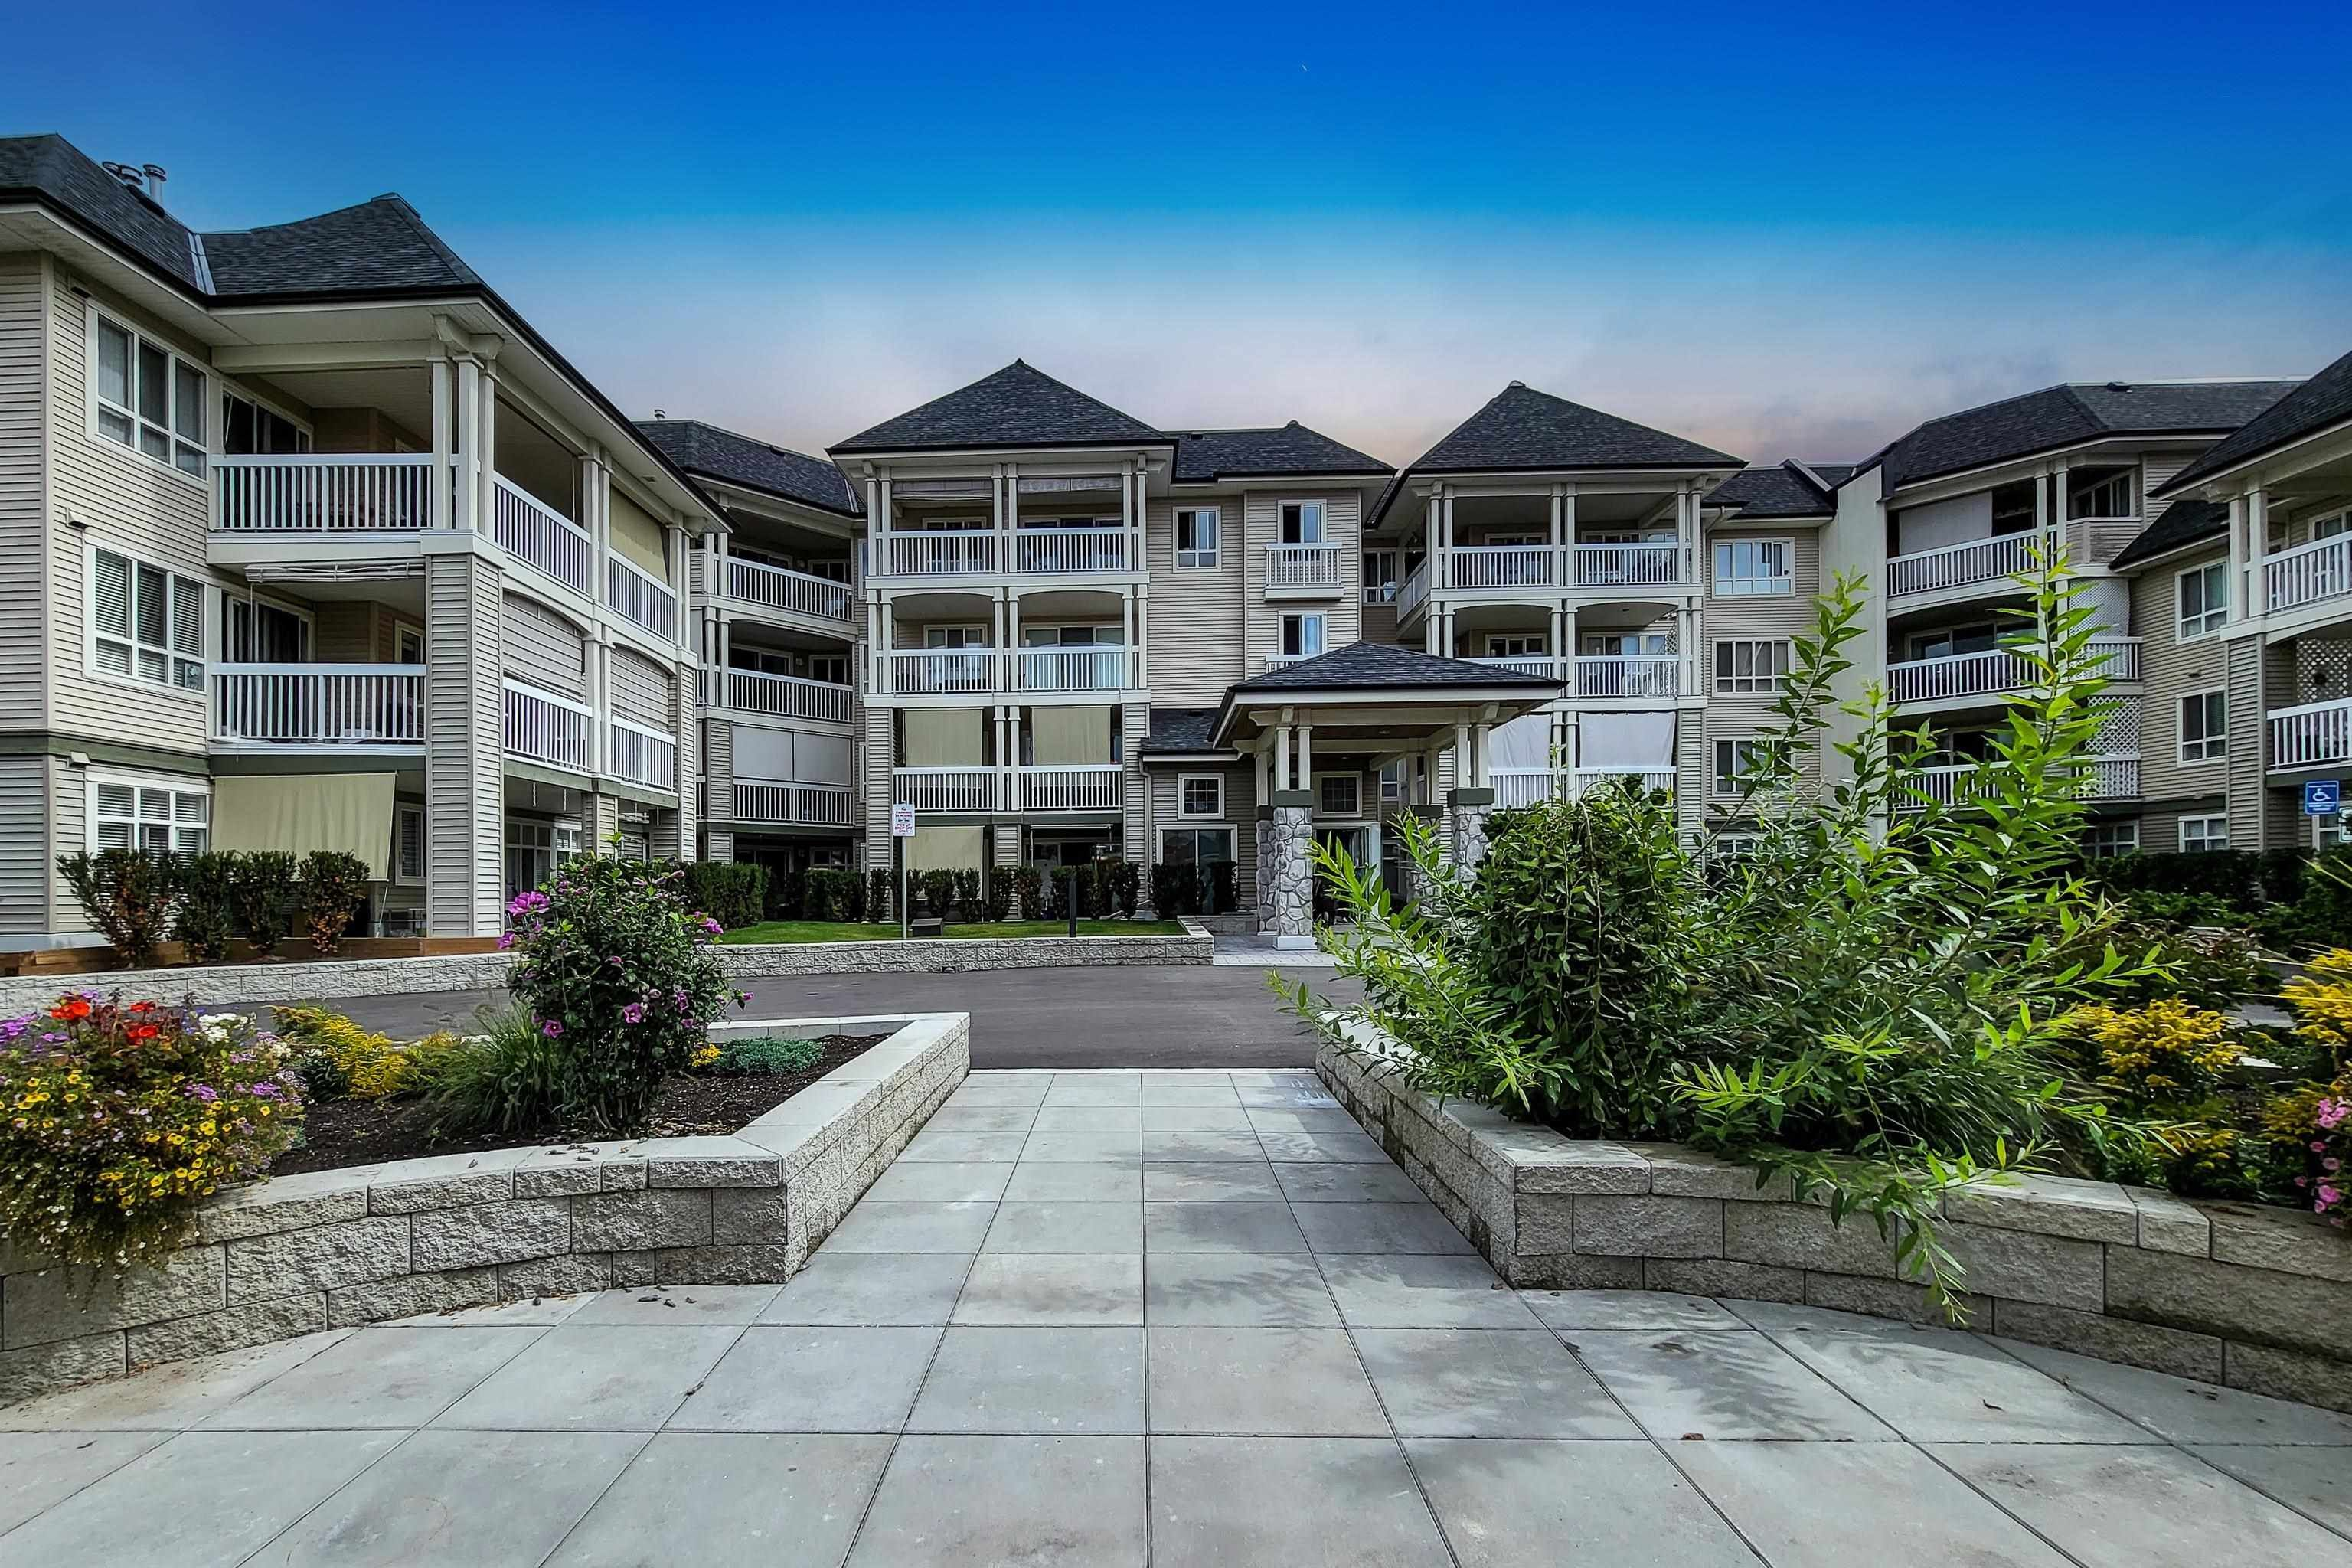 """Main Photo: 407 22022 49 Avenue in Langley: Murrayville Condo for sale in """"Murray Green"""" : MLS®# R2613823"""